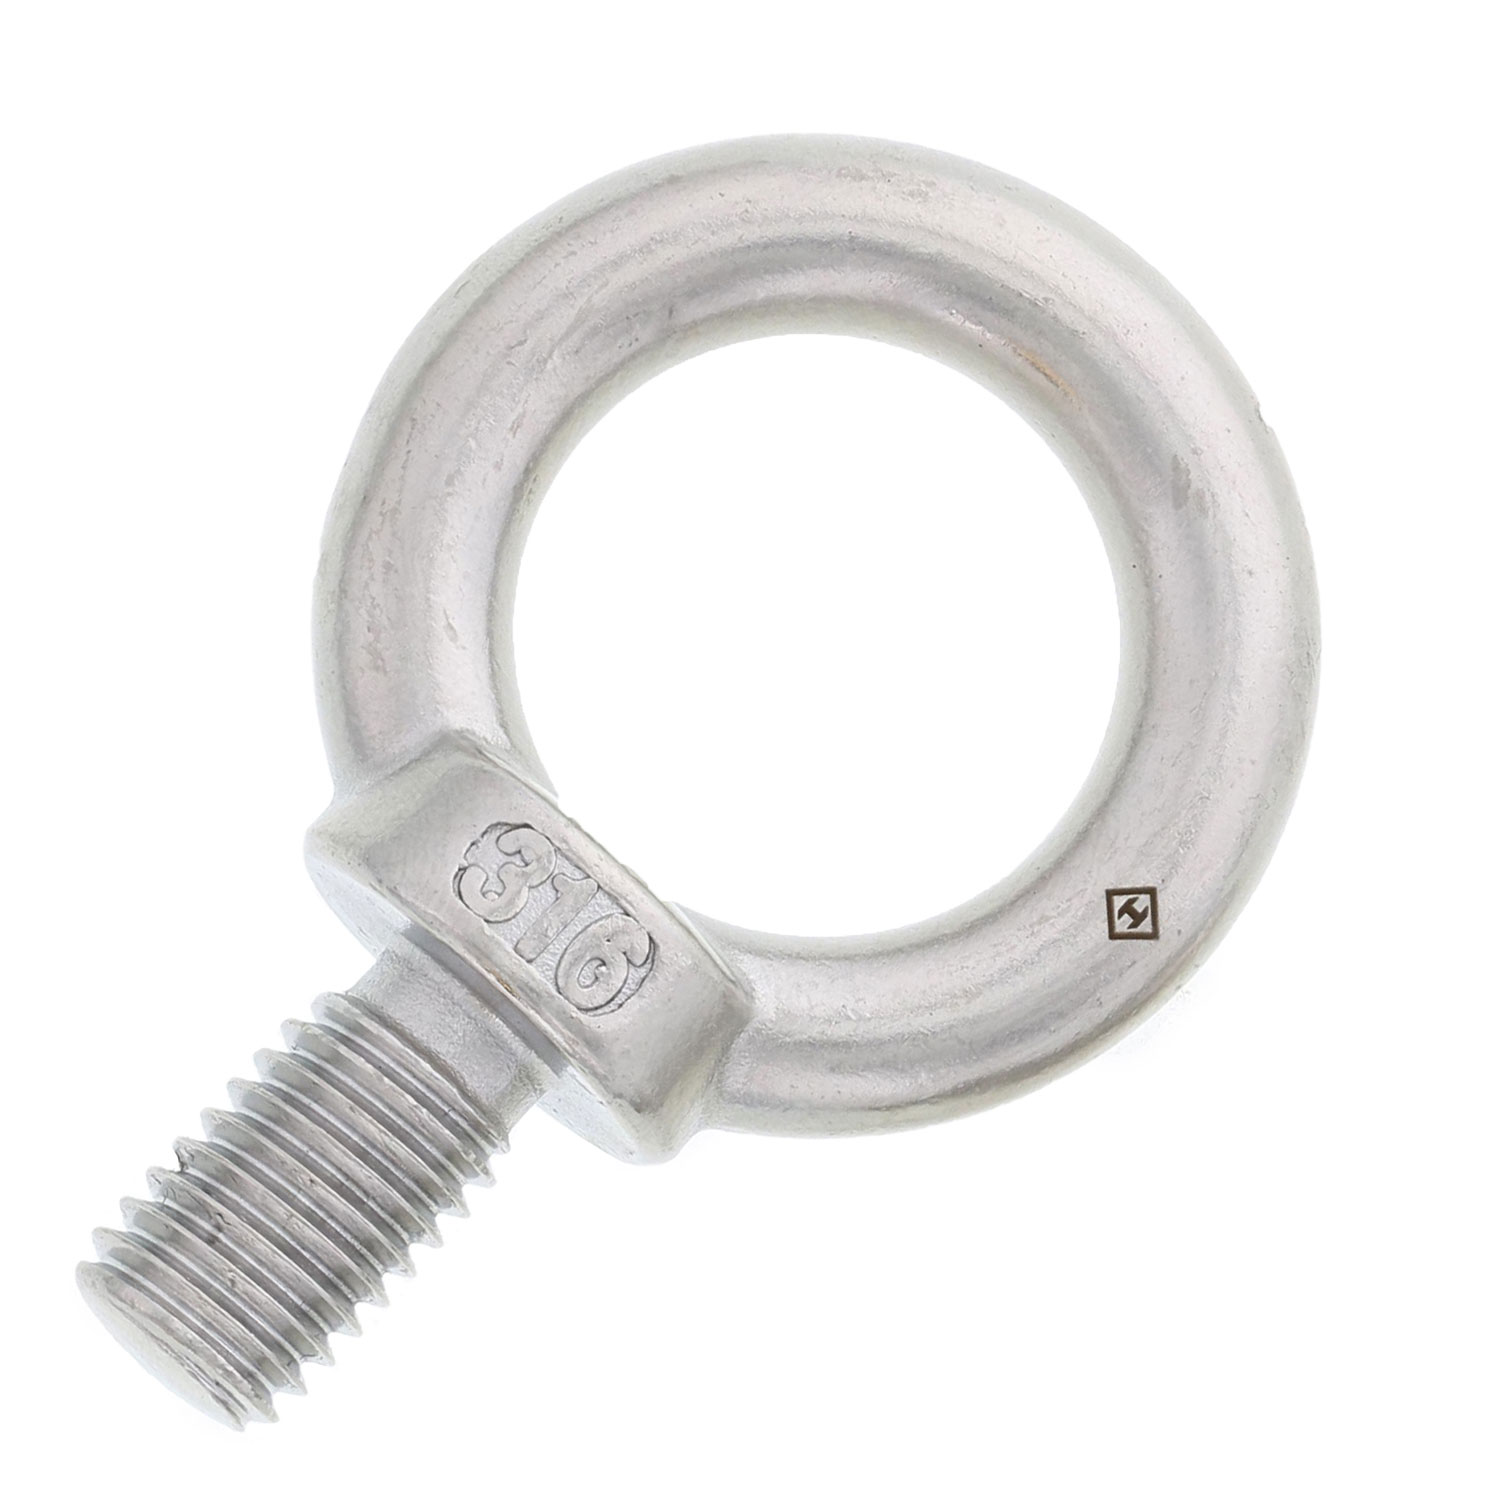 Type 316 Stainless Steel Machinery Eye Bolt